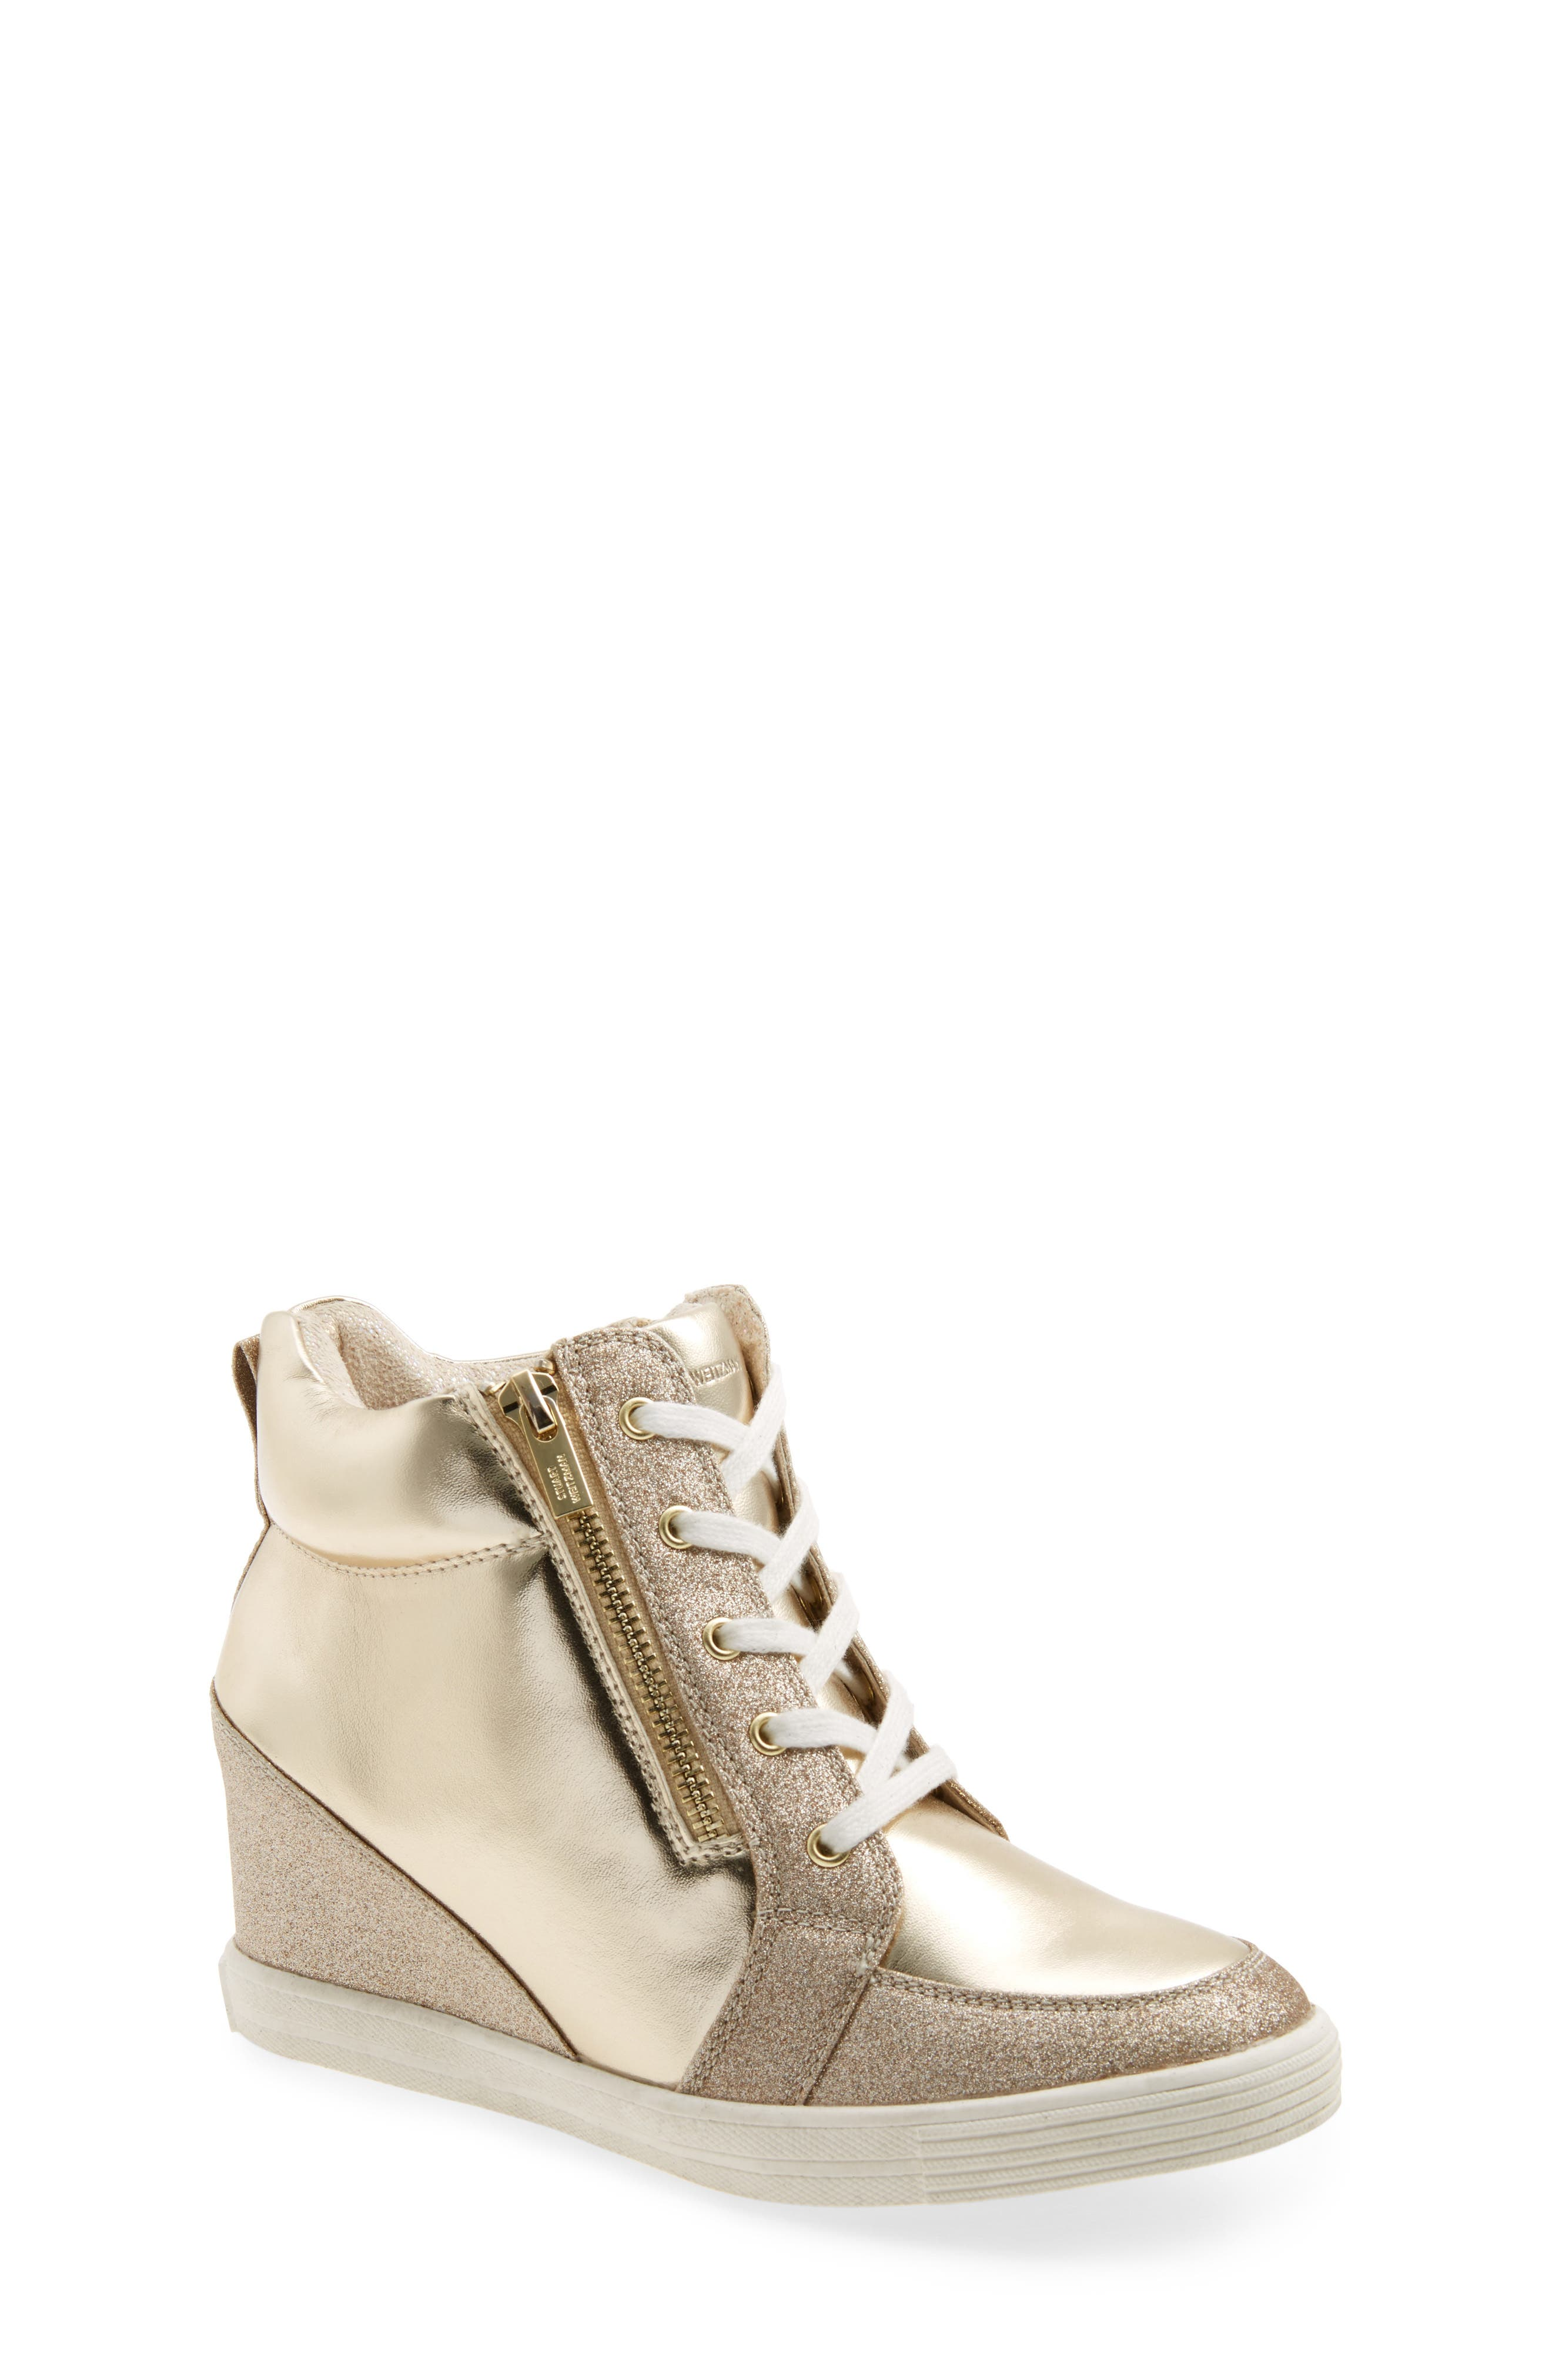 Shipping Discount Sale FOOTWEAR - High-tops & sneakers Stuart Weitzman Choice Cheap Price Looking For For Sale Purchase Your Favorite High Quality fcktzLXbY